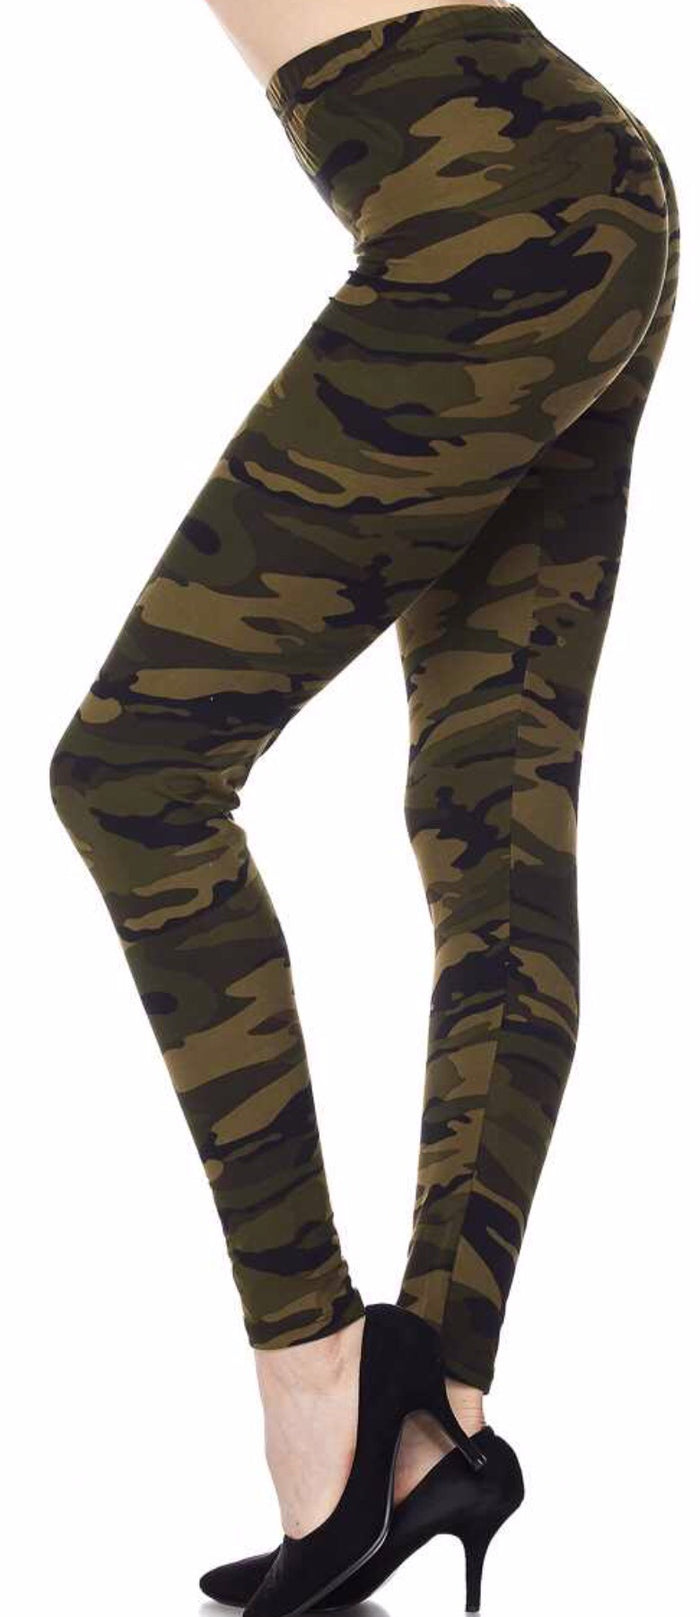 Leggings Camo (Buttery Soft)